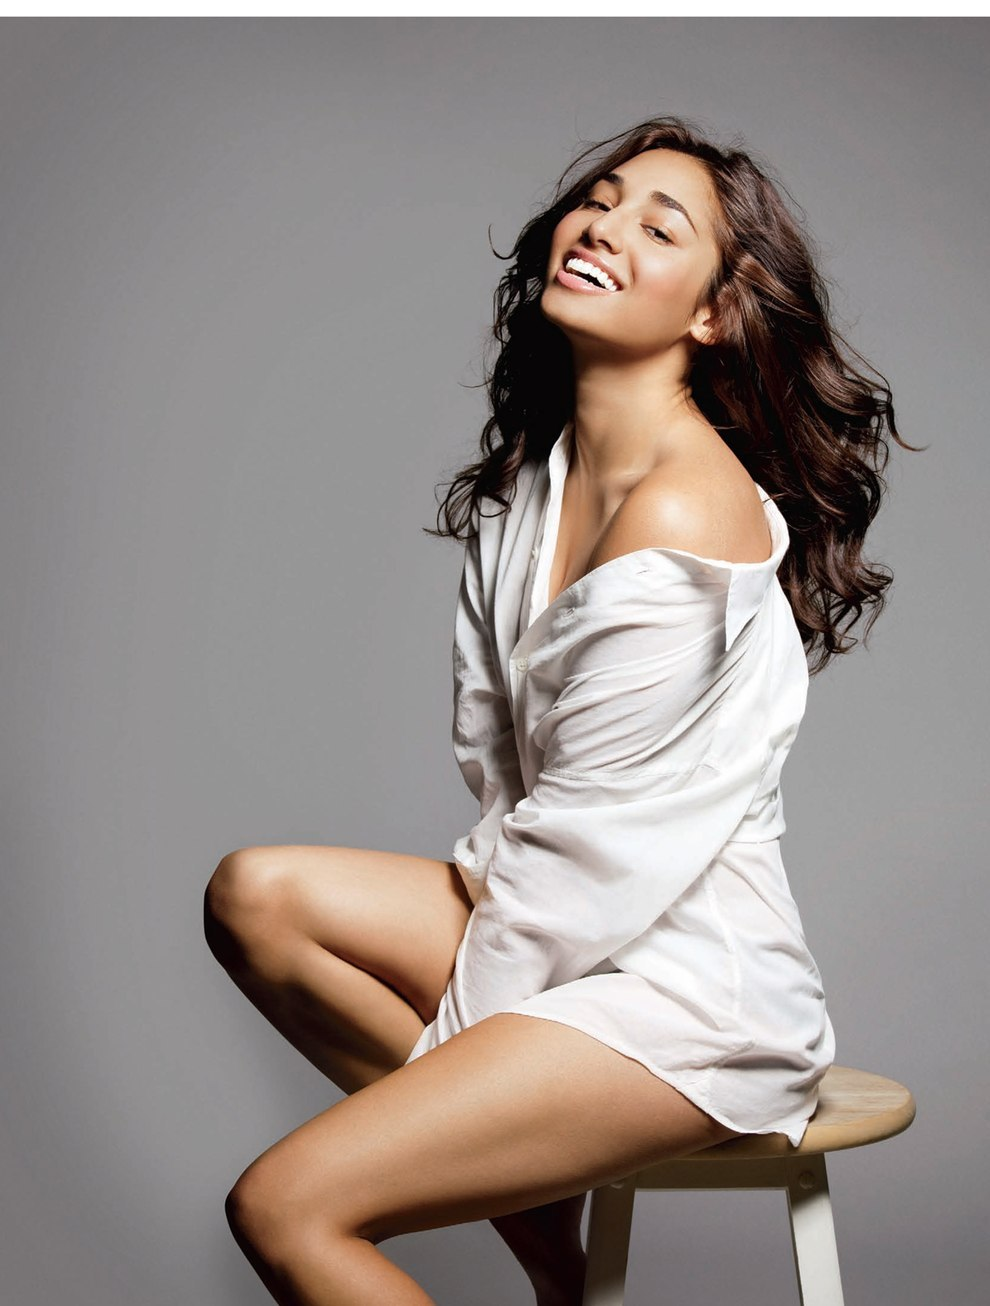 meaghan rath ethnicitymeaghan rath instagram, meaghan rath facebook, meaghan rath, meaghan rath new girl, meaghan rath boyfriend, meaghan rath banshee, meaghan rath imdb, meaghan rath twitter, meaghan rath wiki, meaghan rath tumblr, meaghan rath dailymotion, meaghan rath height, meaghan rath net worth, meaghan rath ethnicity, meaghan rath nudography